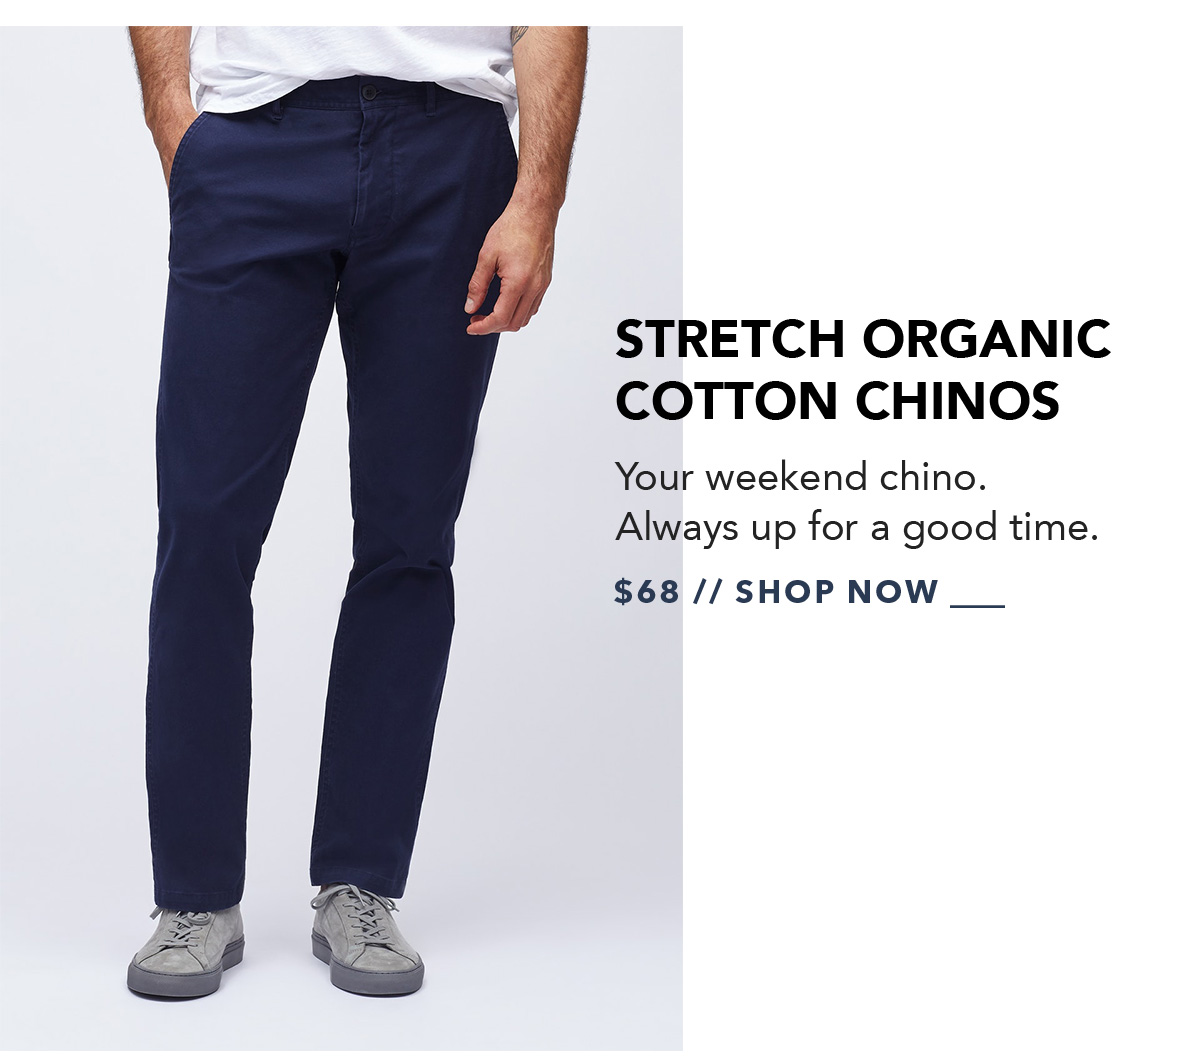 Stretch Organic Cotton Chinos: Your weekend chino. Always up for a good time.